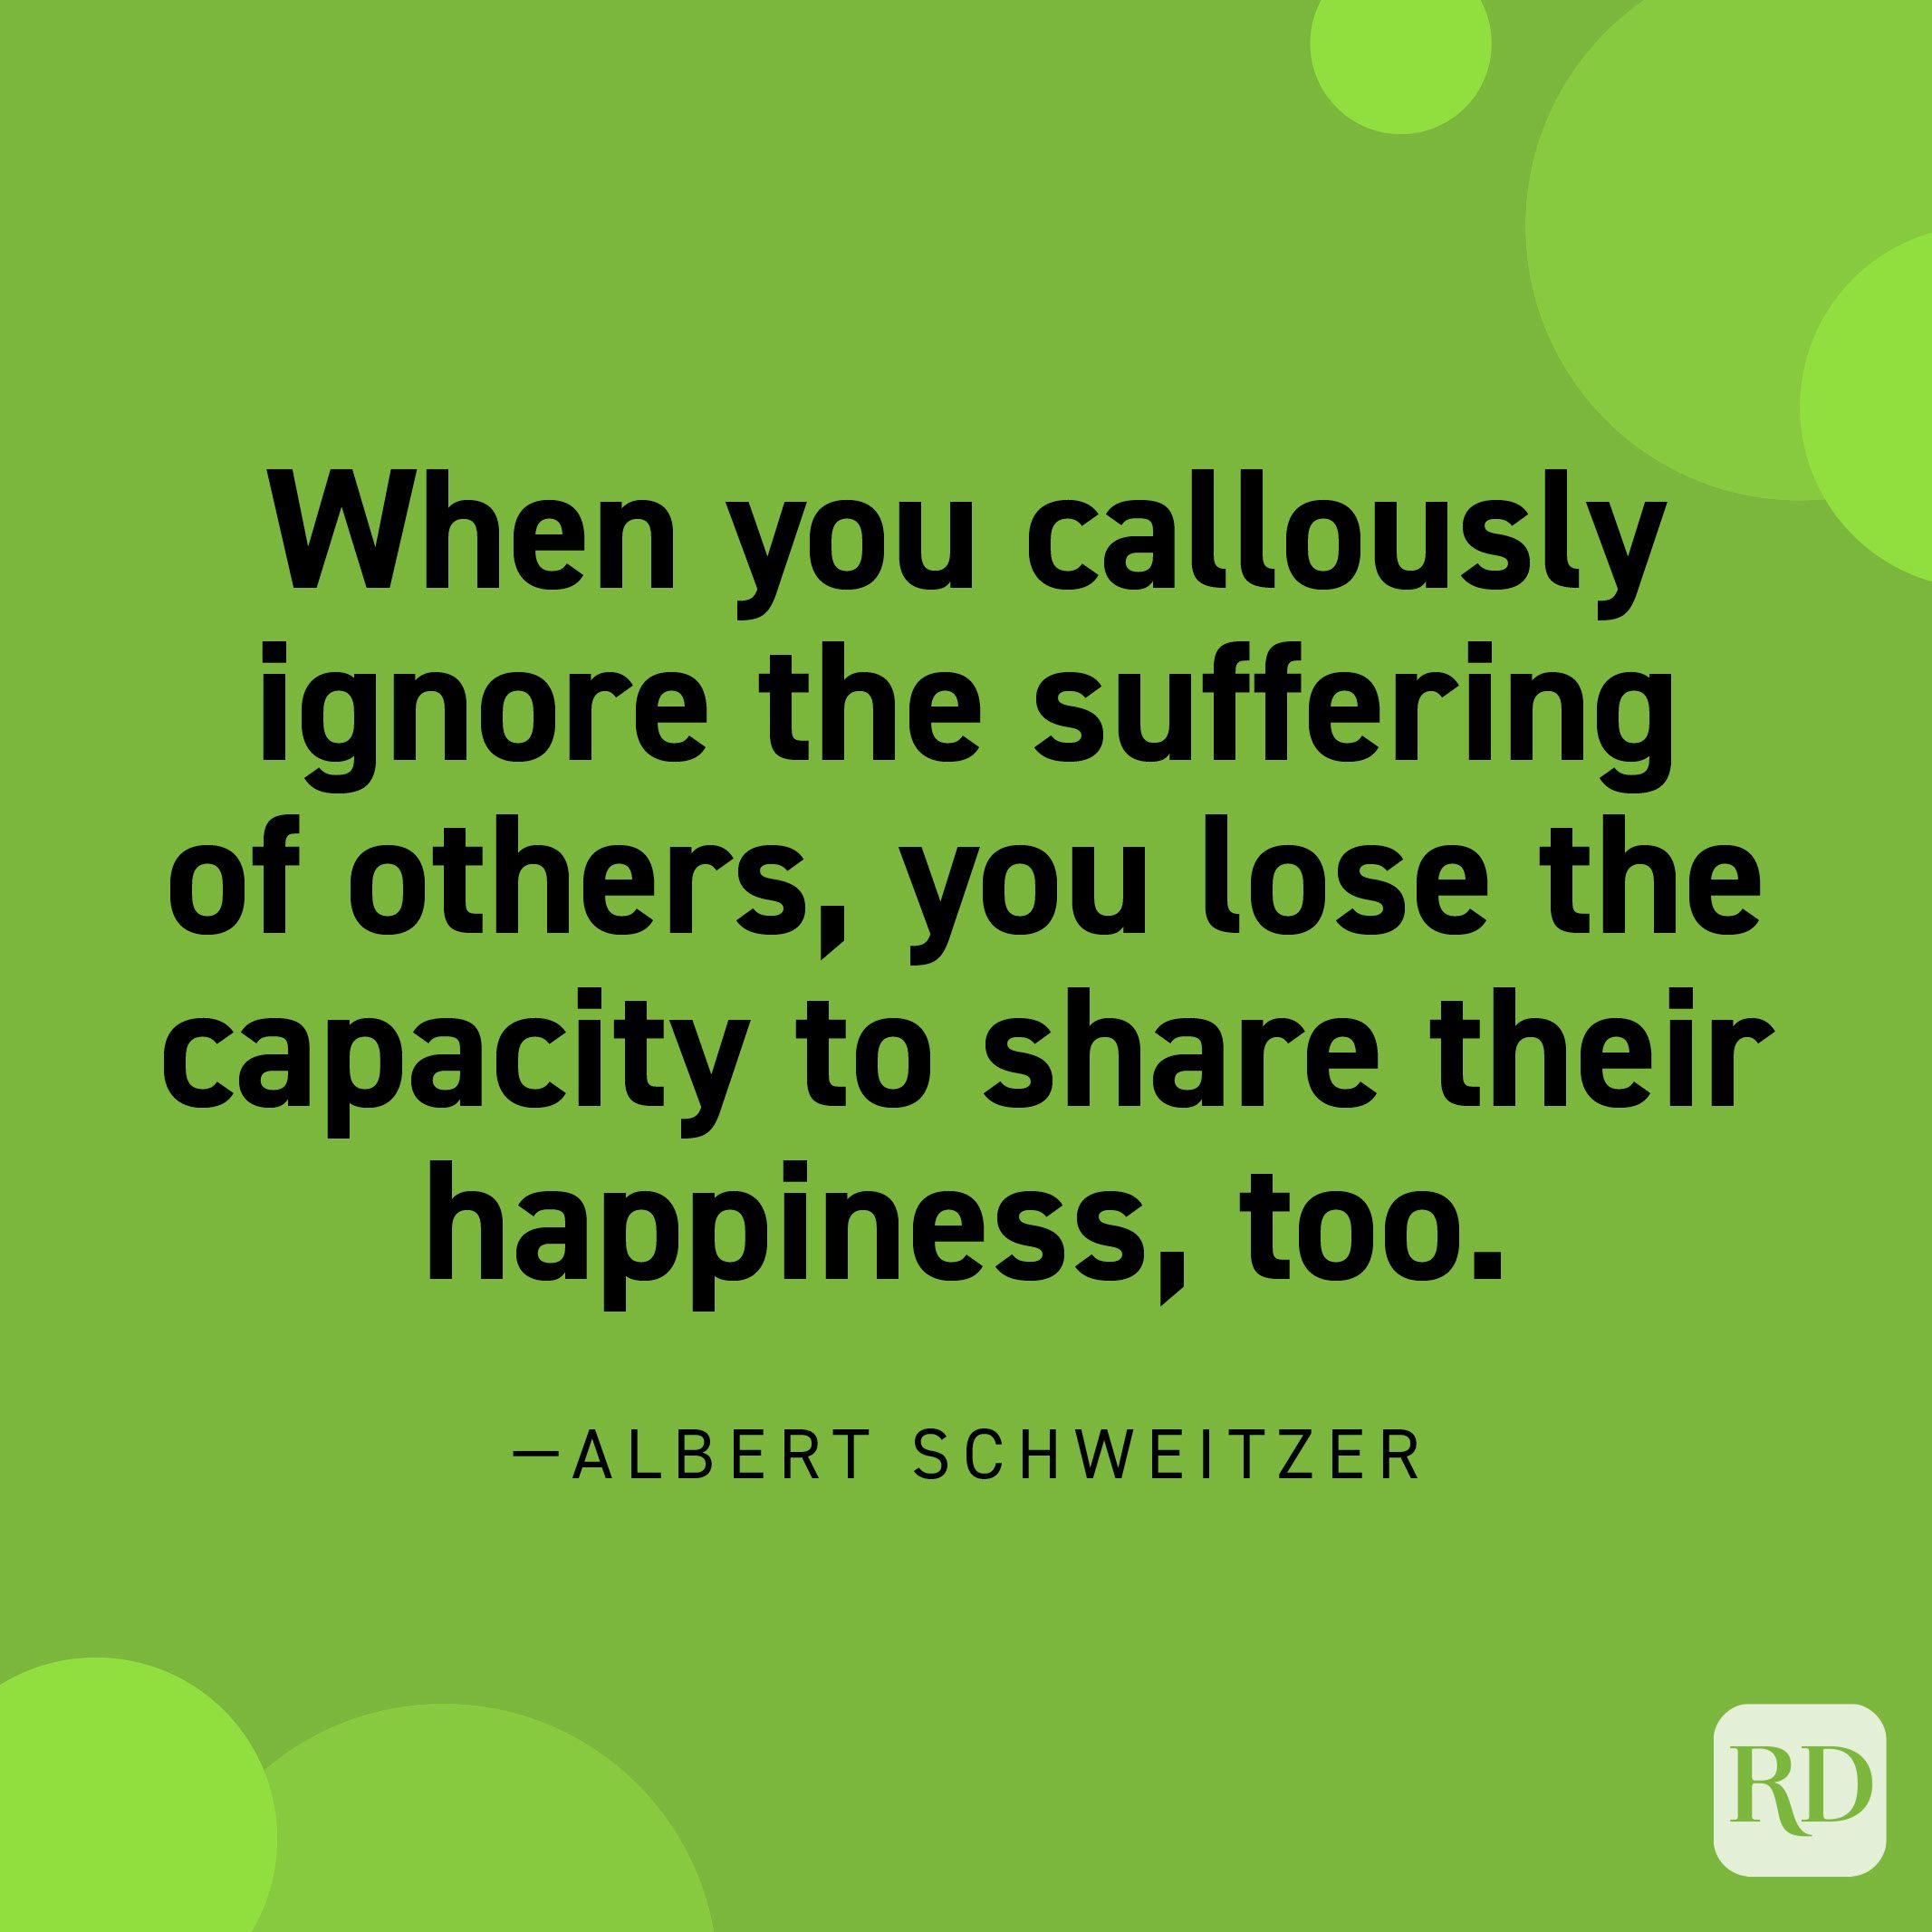 """""""As for…the fear that compassion will involve you in suffering, counter it with the realization that the sharing of sorrow expands your capacity to share joy as well. When you callously ignore the suffering of others, you lose the capacity to share their happiness, too.""""—Albert Schweitzer"""